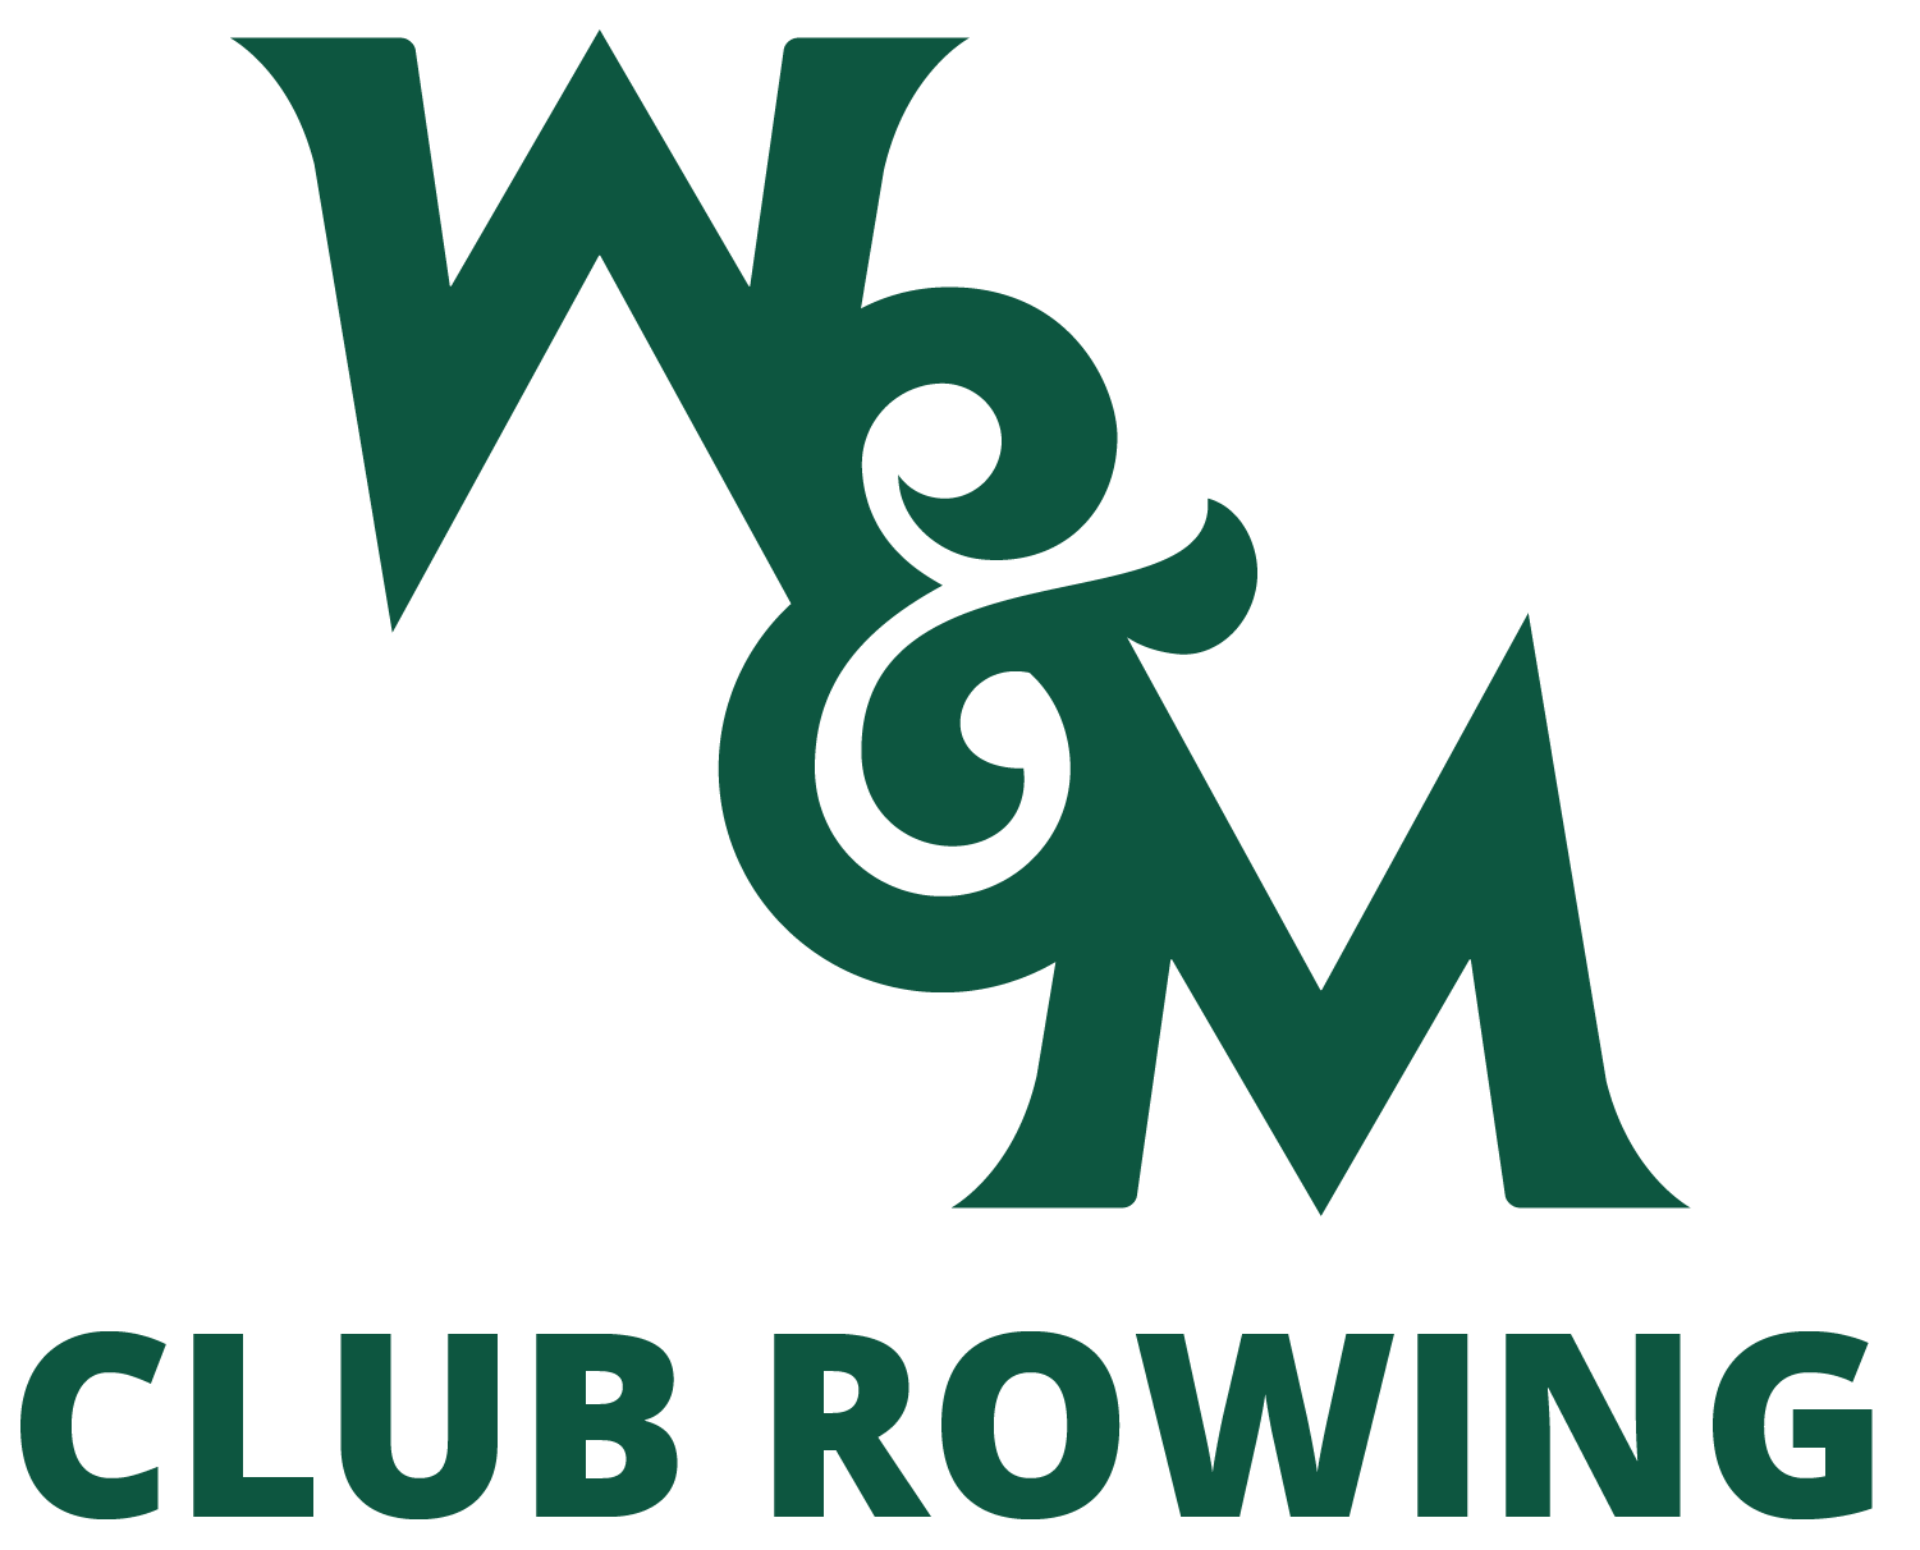 Friends of William and Mary Rowing